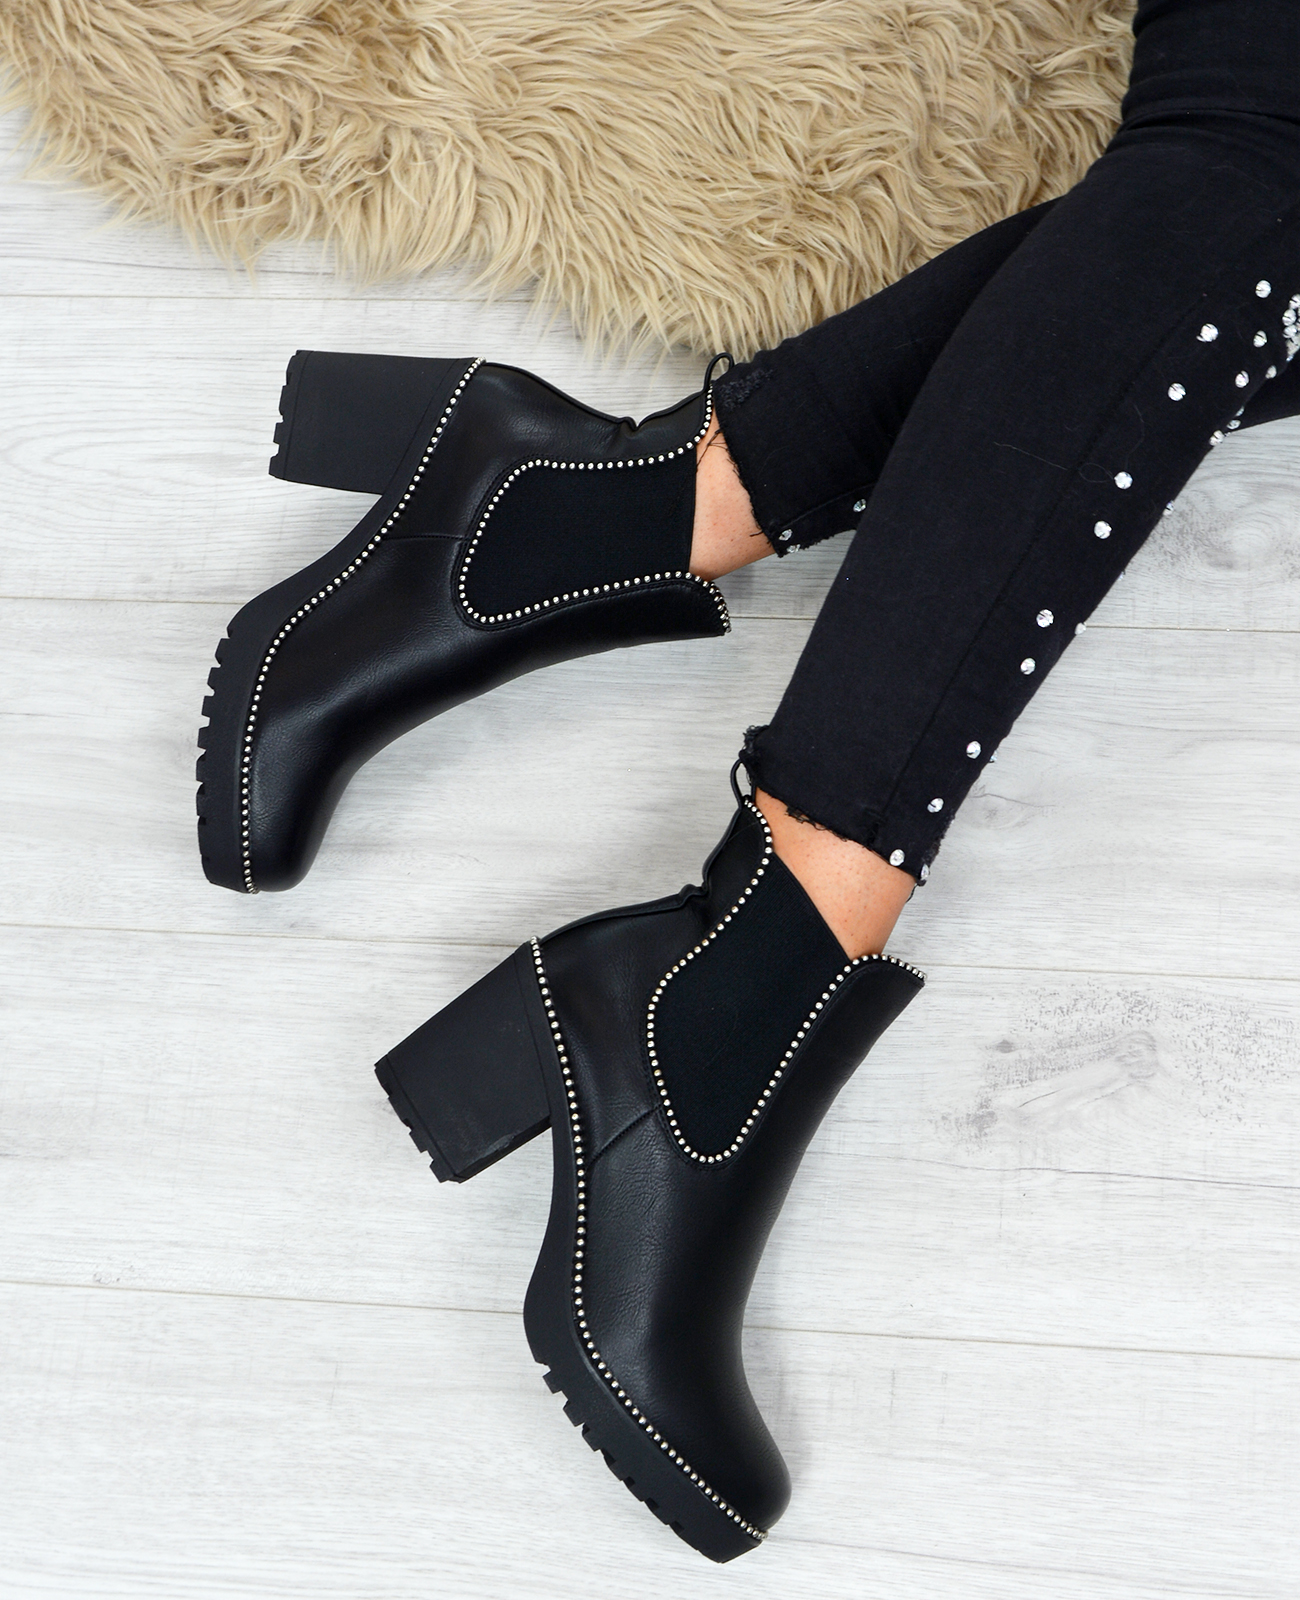 LADIES-WOMENS-CHELSEA-ANKLE-BOOTS-STUDDED-BLOCK-HEELS-ELASTIC-SHOES-SIZES-UK